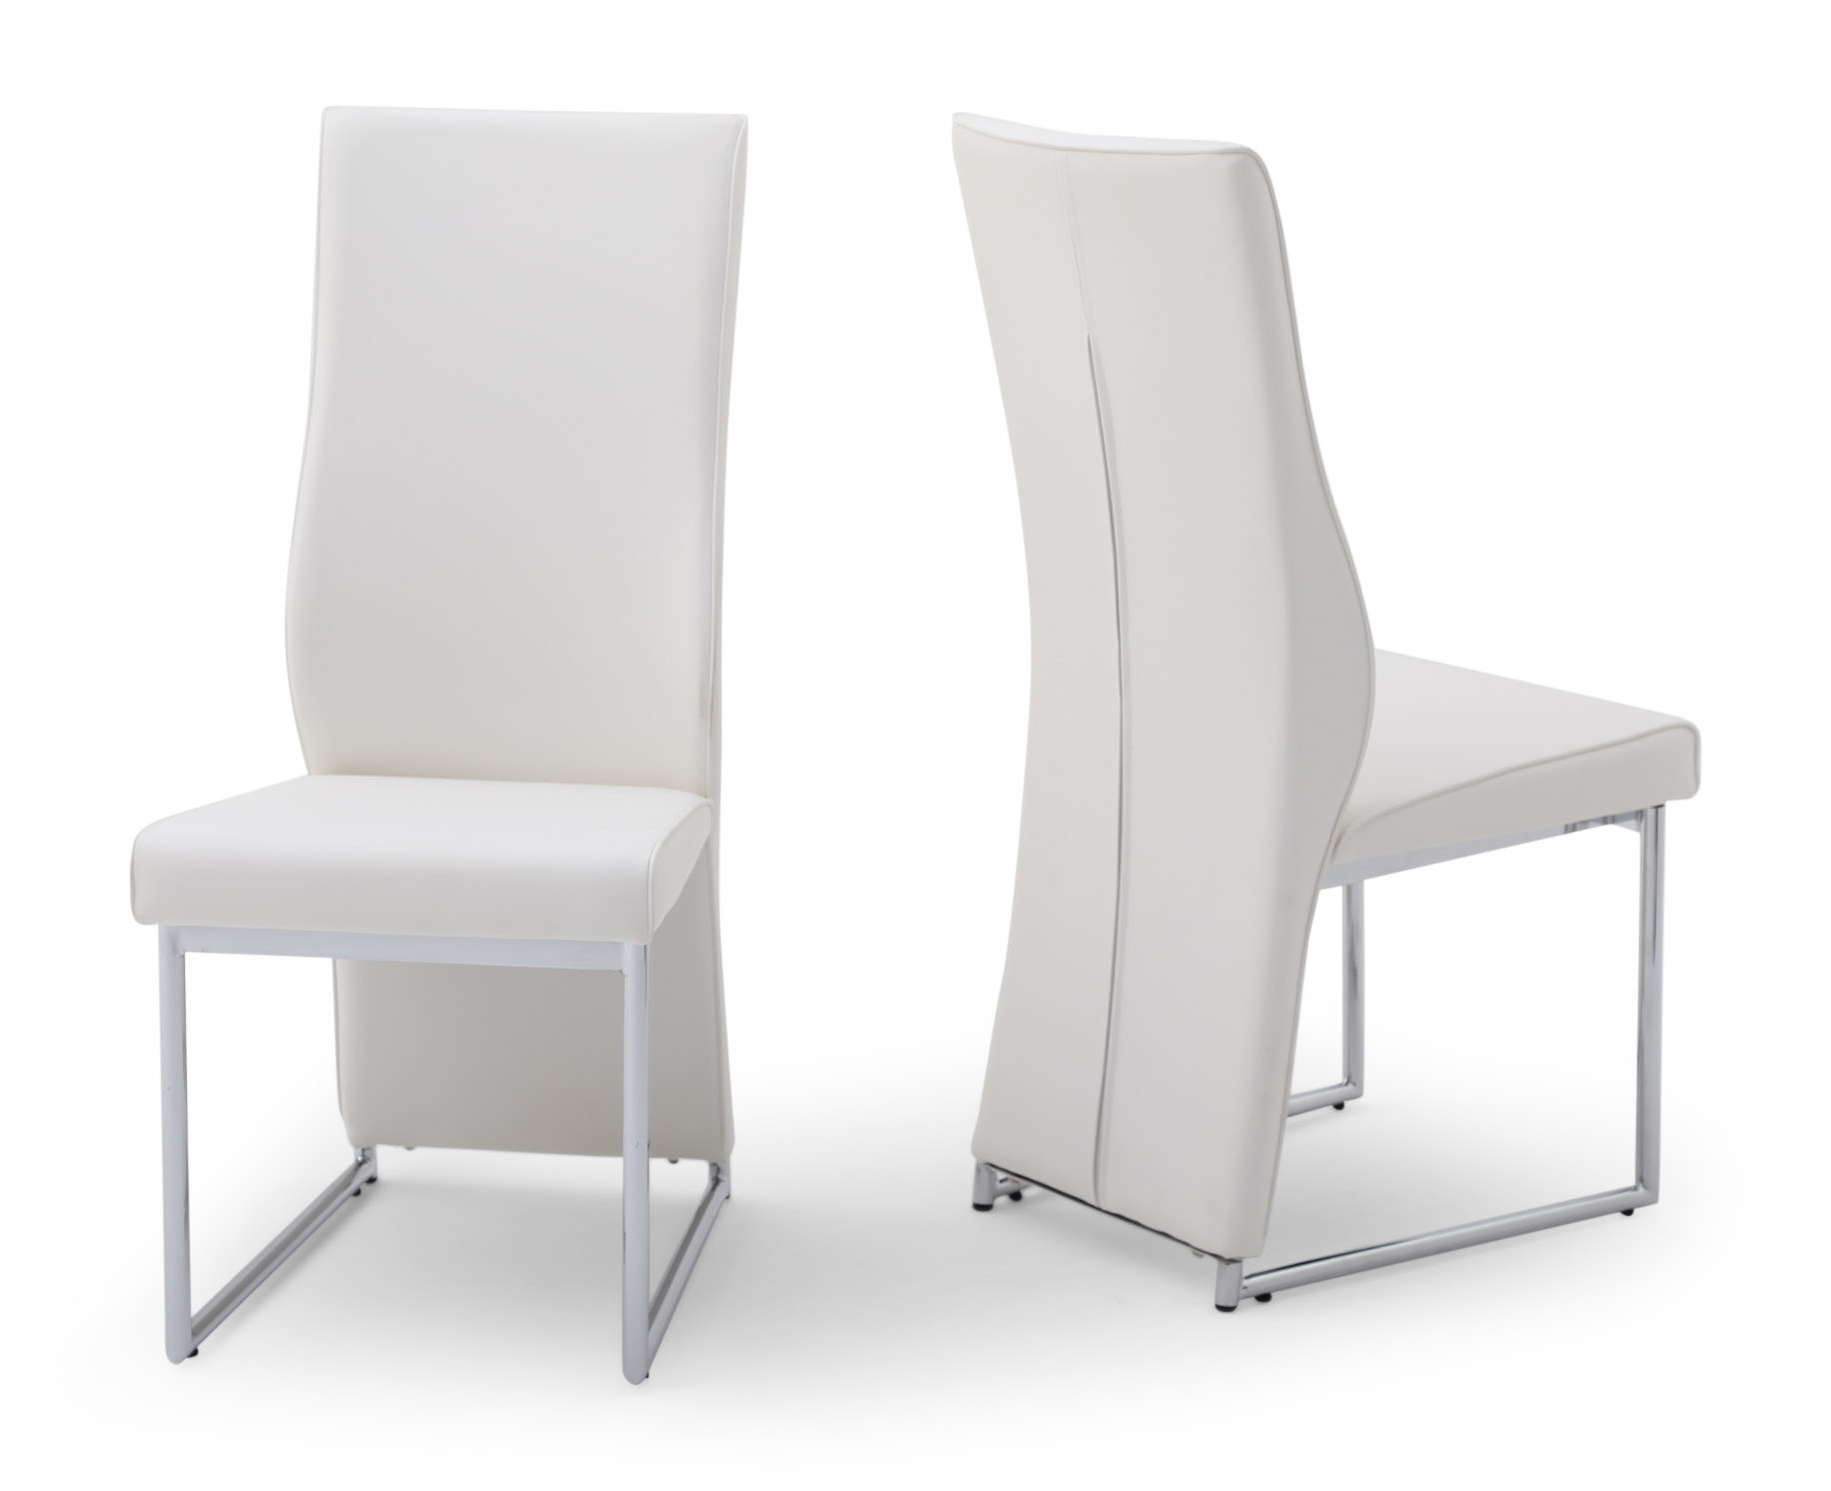 Imperial White High Back Leather Dining Chair With Most Popular White Leather Dining Chairs (View 10 of 25)